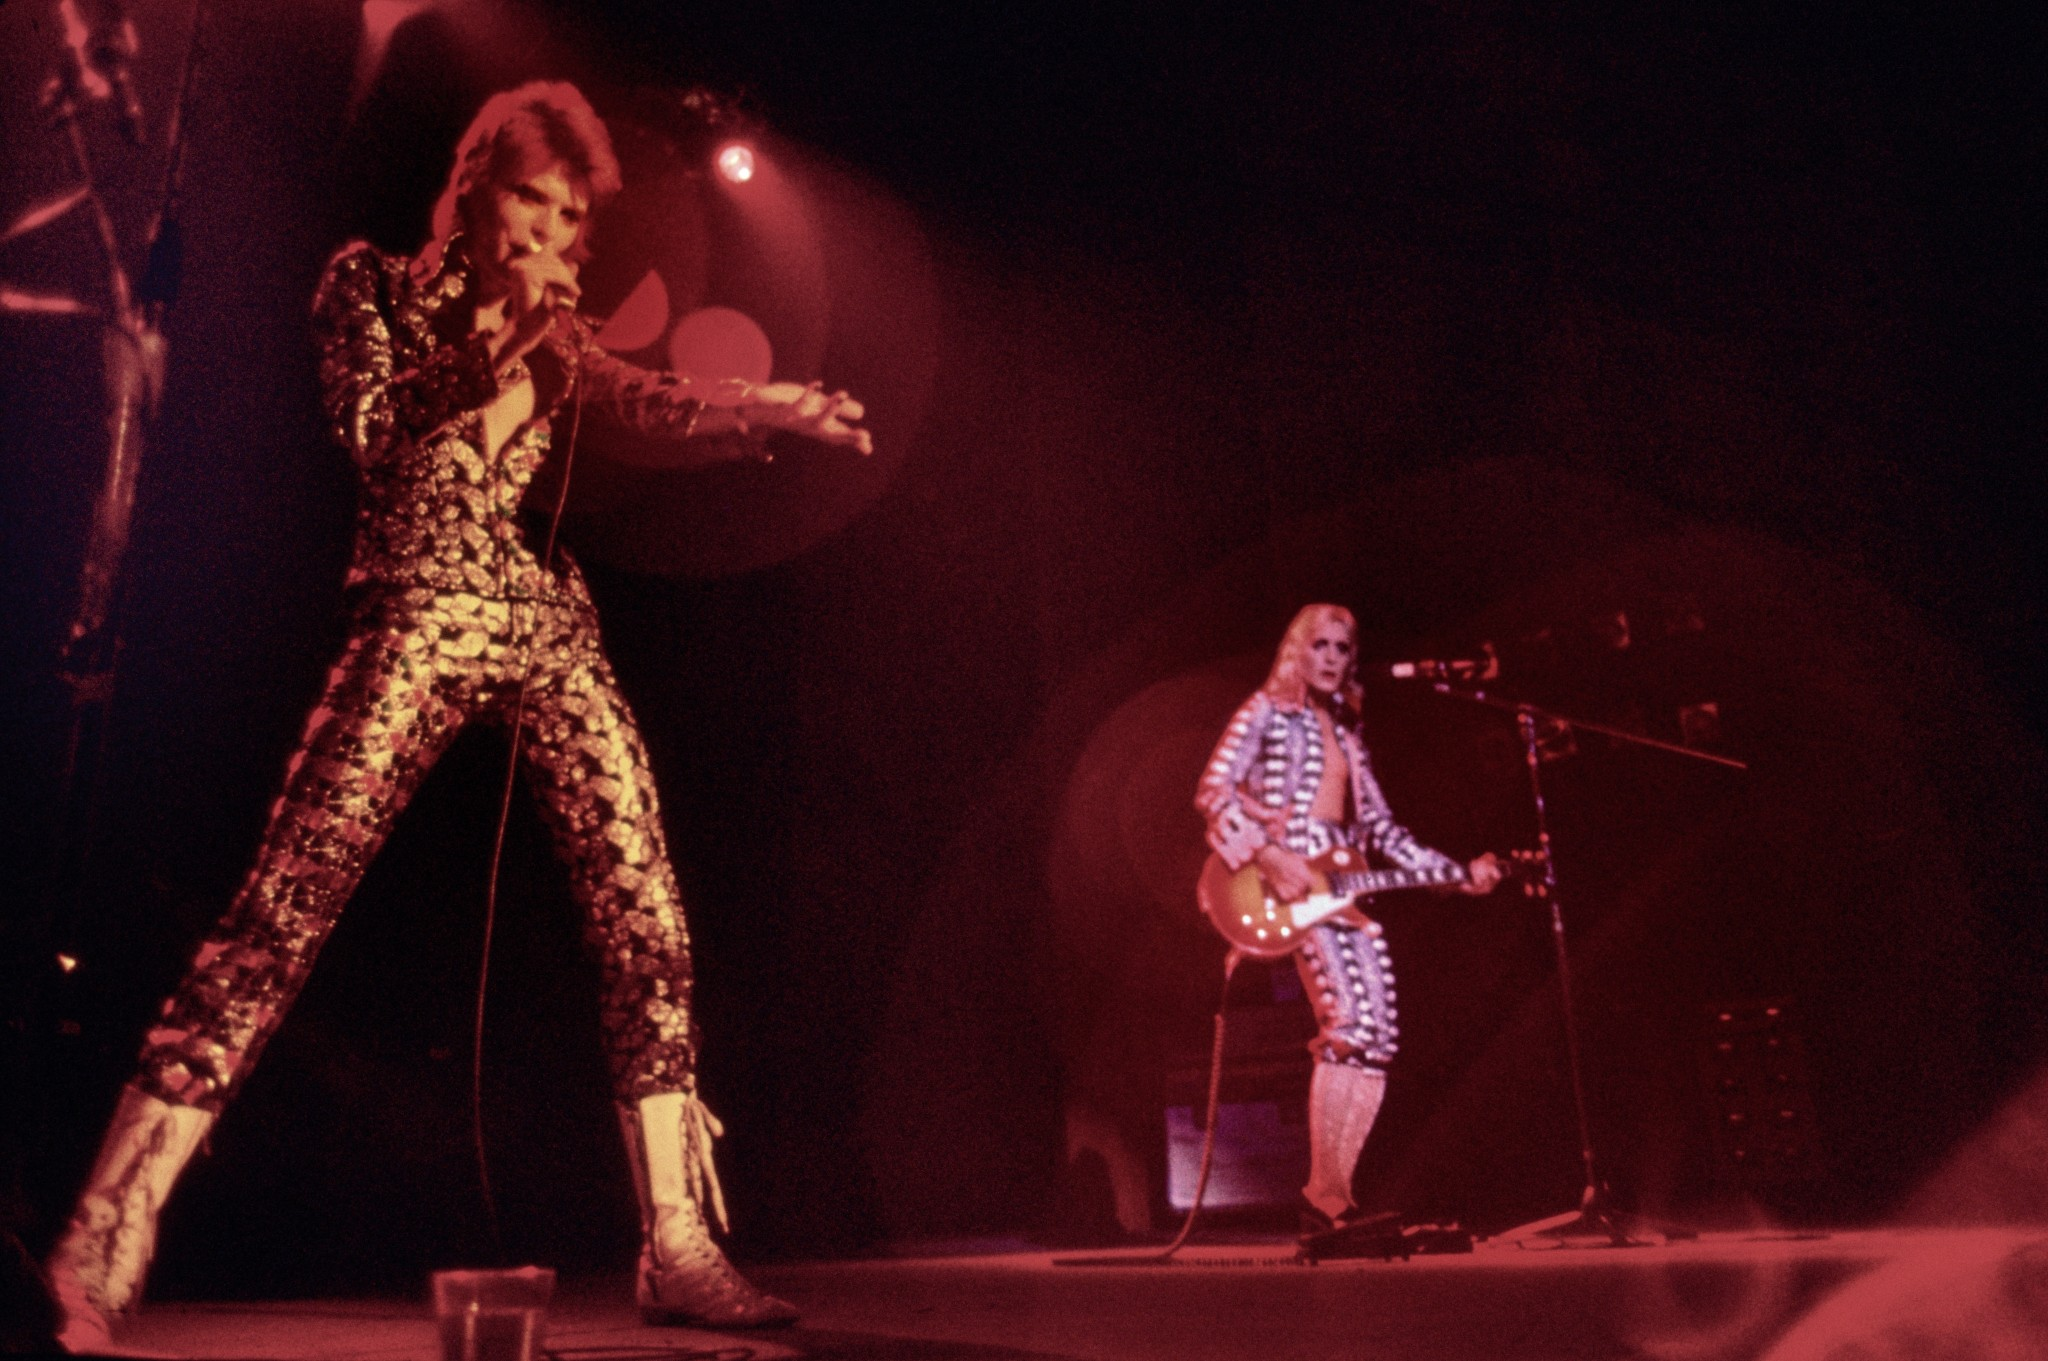 David Bowie as Ziggy on stage in Cleveland in Mick Rock's book